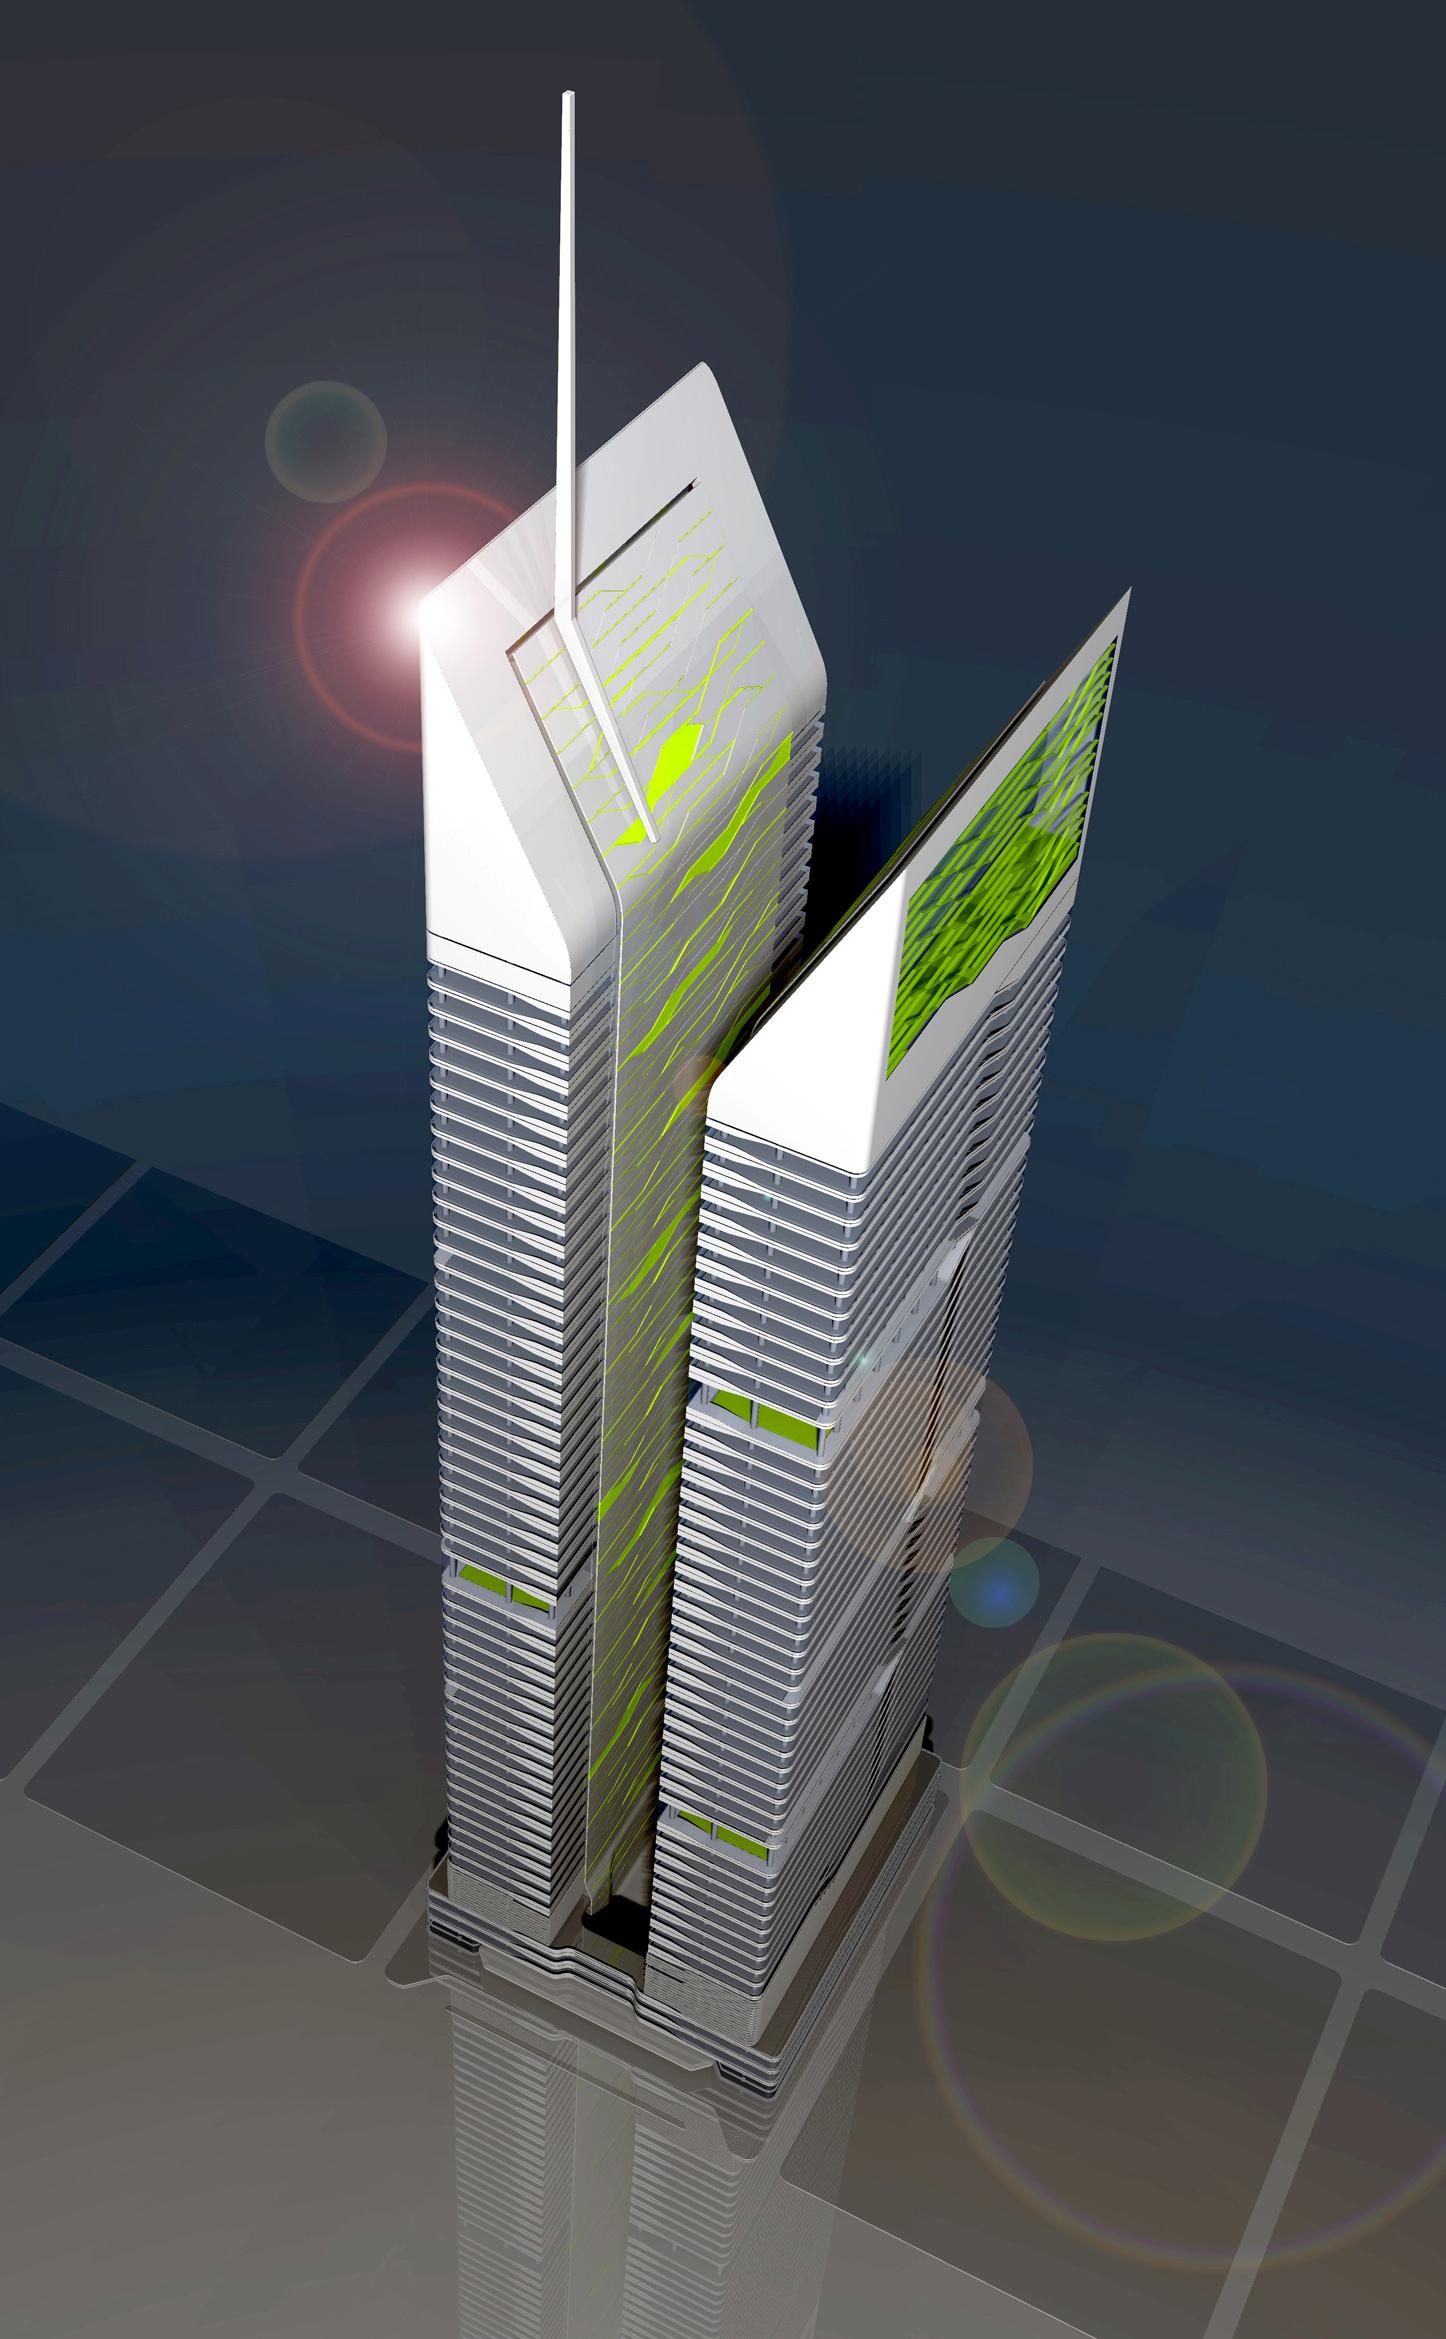 Copy of Skyscraper